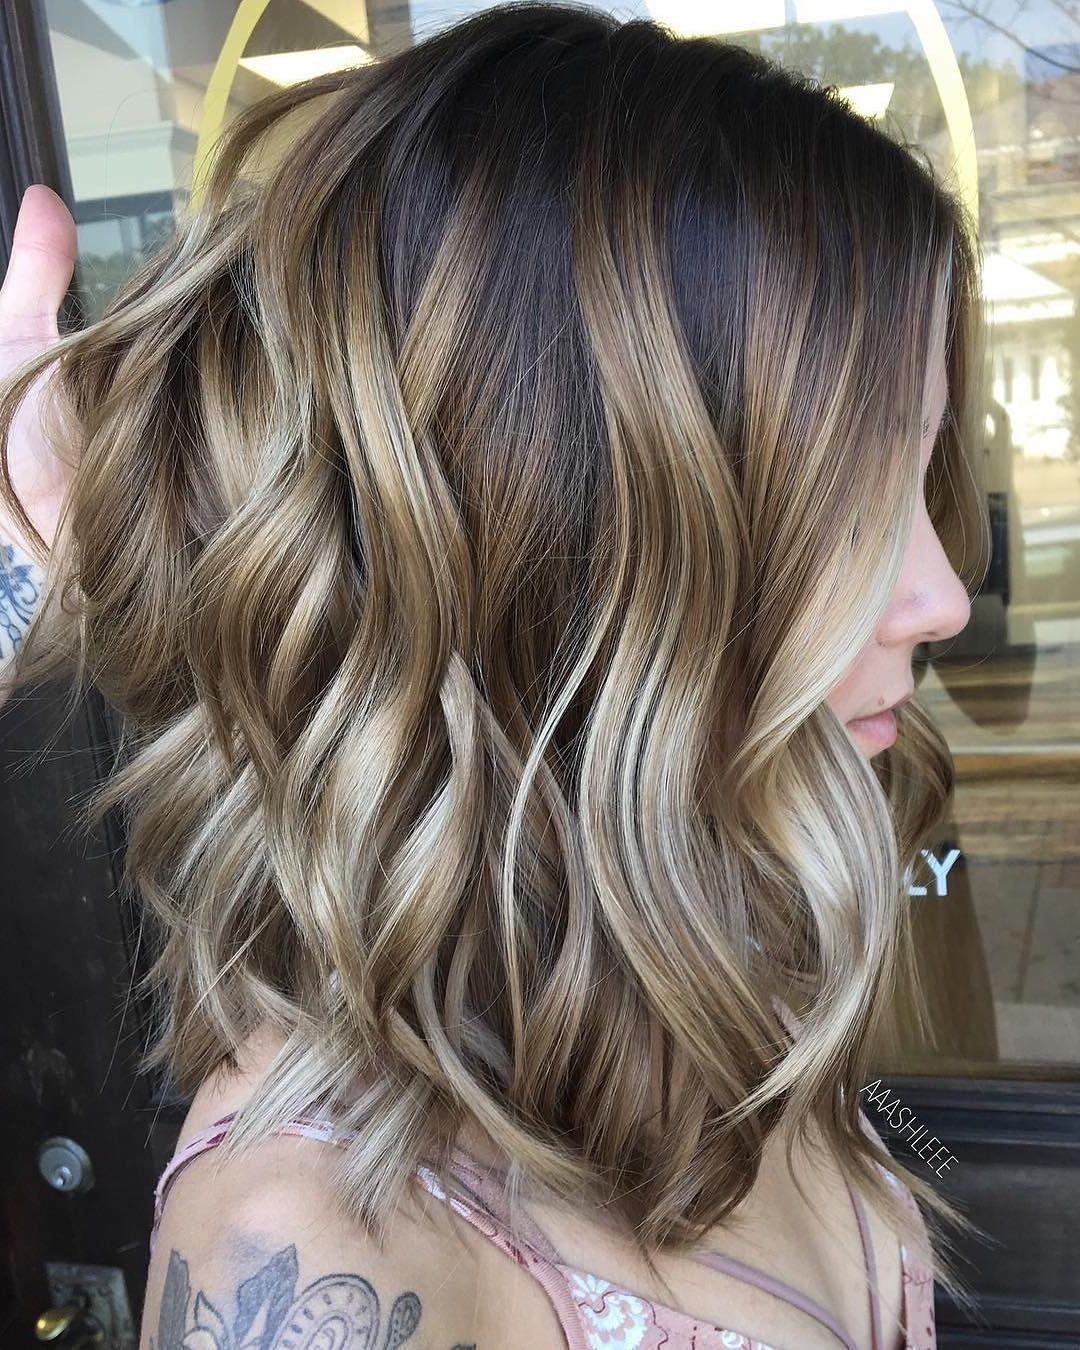 Fashionable Volumized Caramel Blonde Lob Hairstyles Inside 10 Ombre Balayage Hairstyles For Medium Length Hair, Hair Color (View 10 of 20)